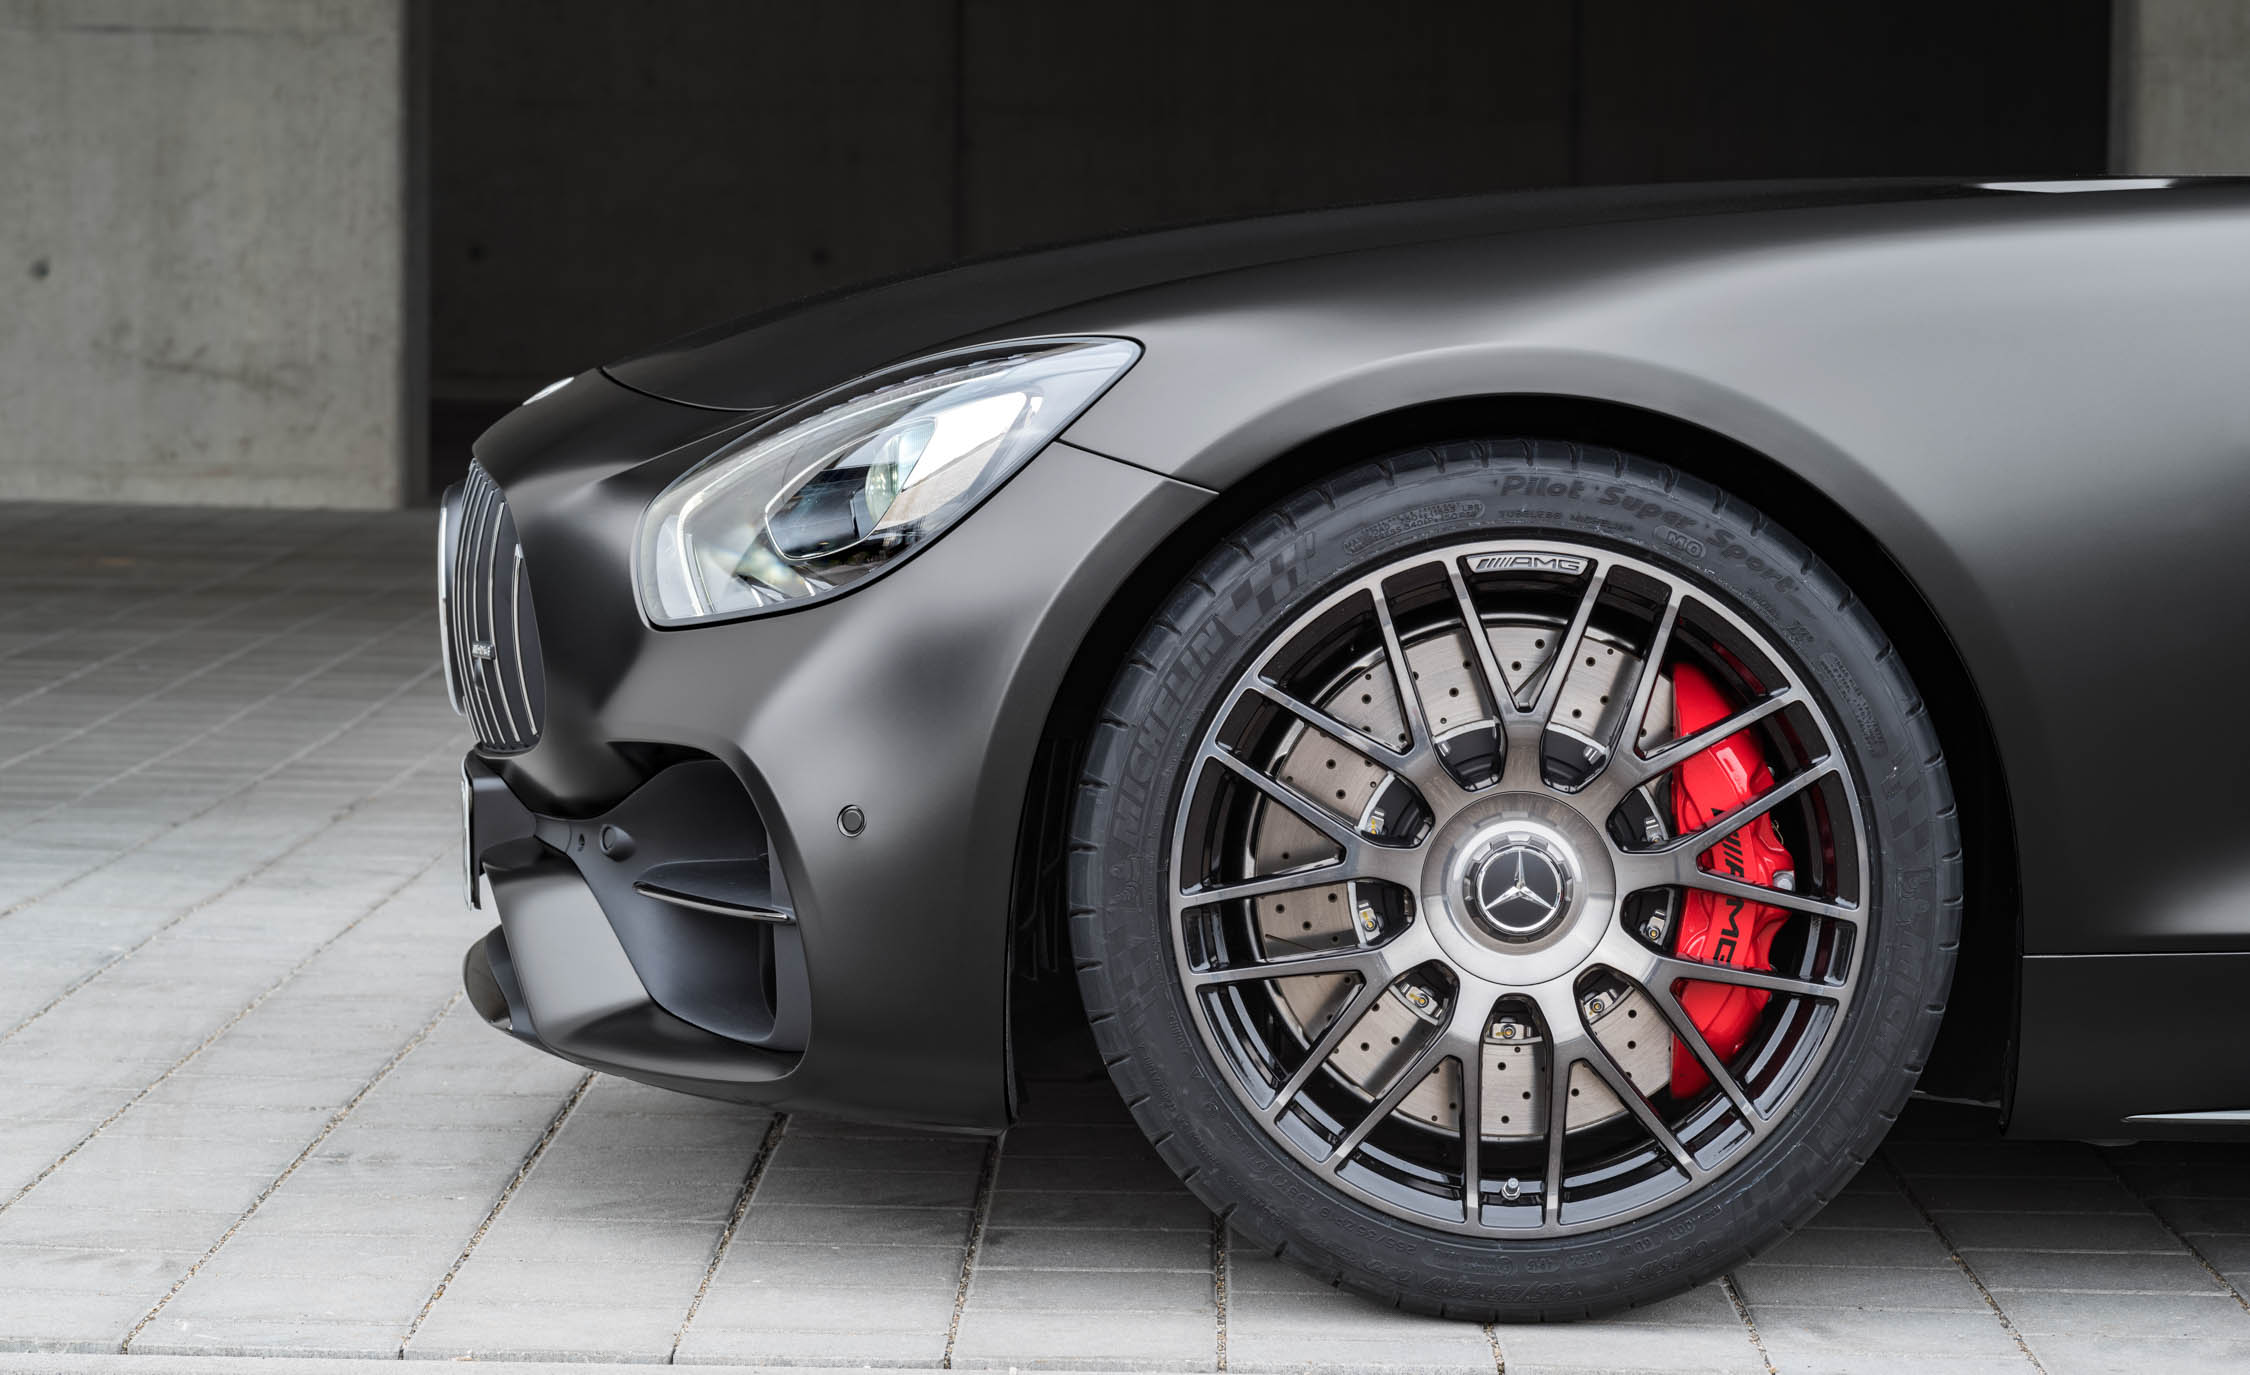 2018 Mercedes Amg Gt C Exterior View Wheel Trim (Photo 9 of 23)